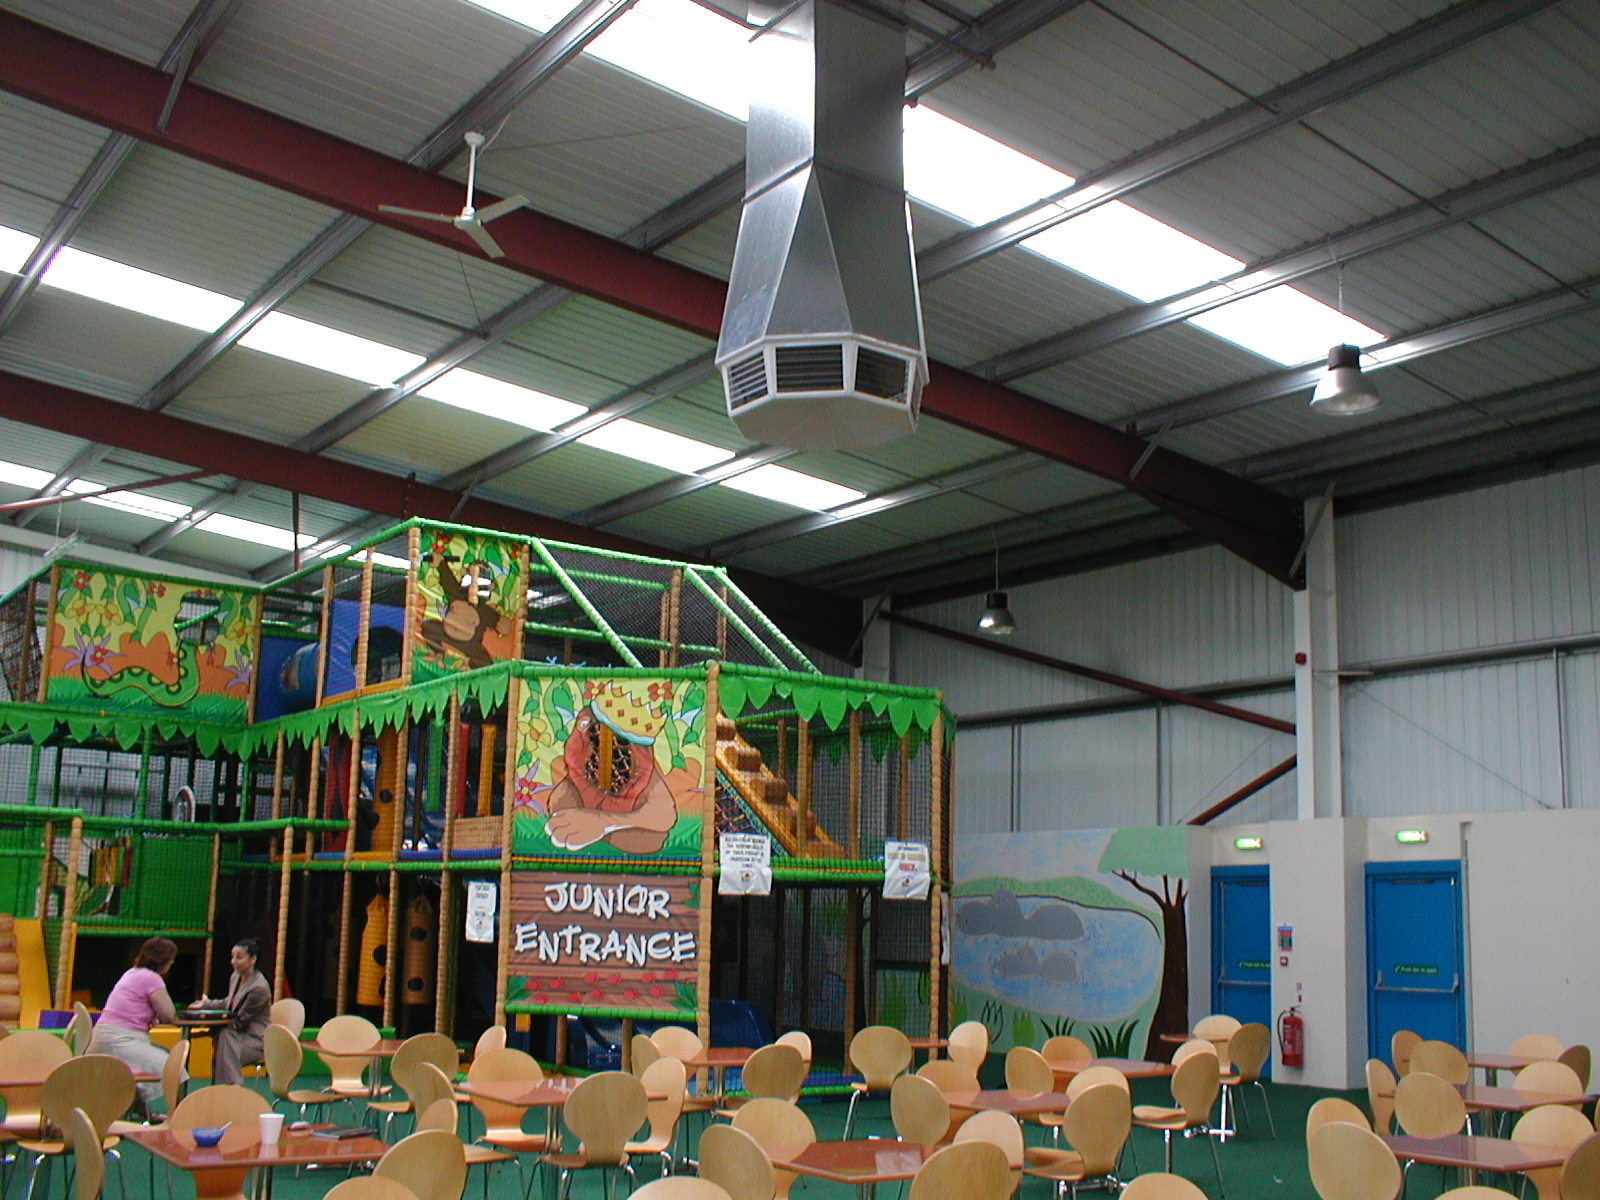 Evaporative cooling a childrens play area.